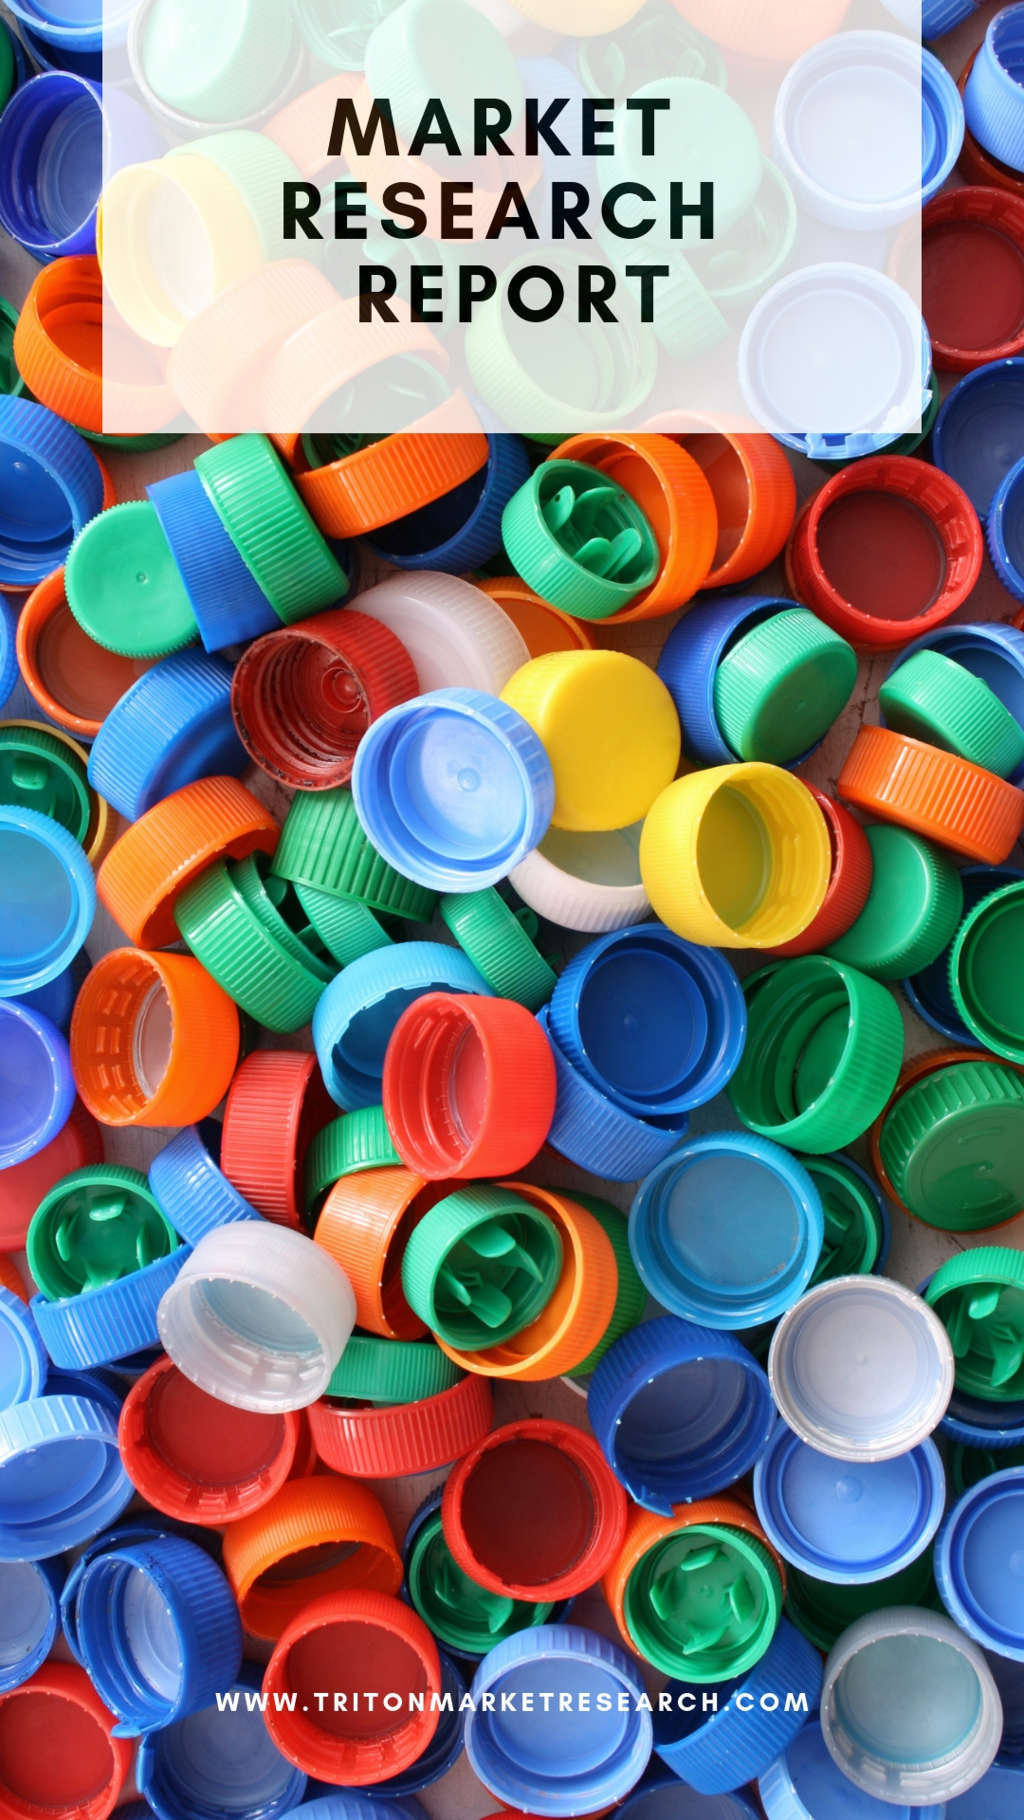 ASIA-PACIFIC POLYETHYLENE TEREPHTHALATE (PET) MARKET 2021-2028